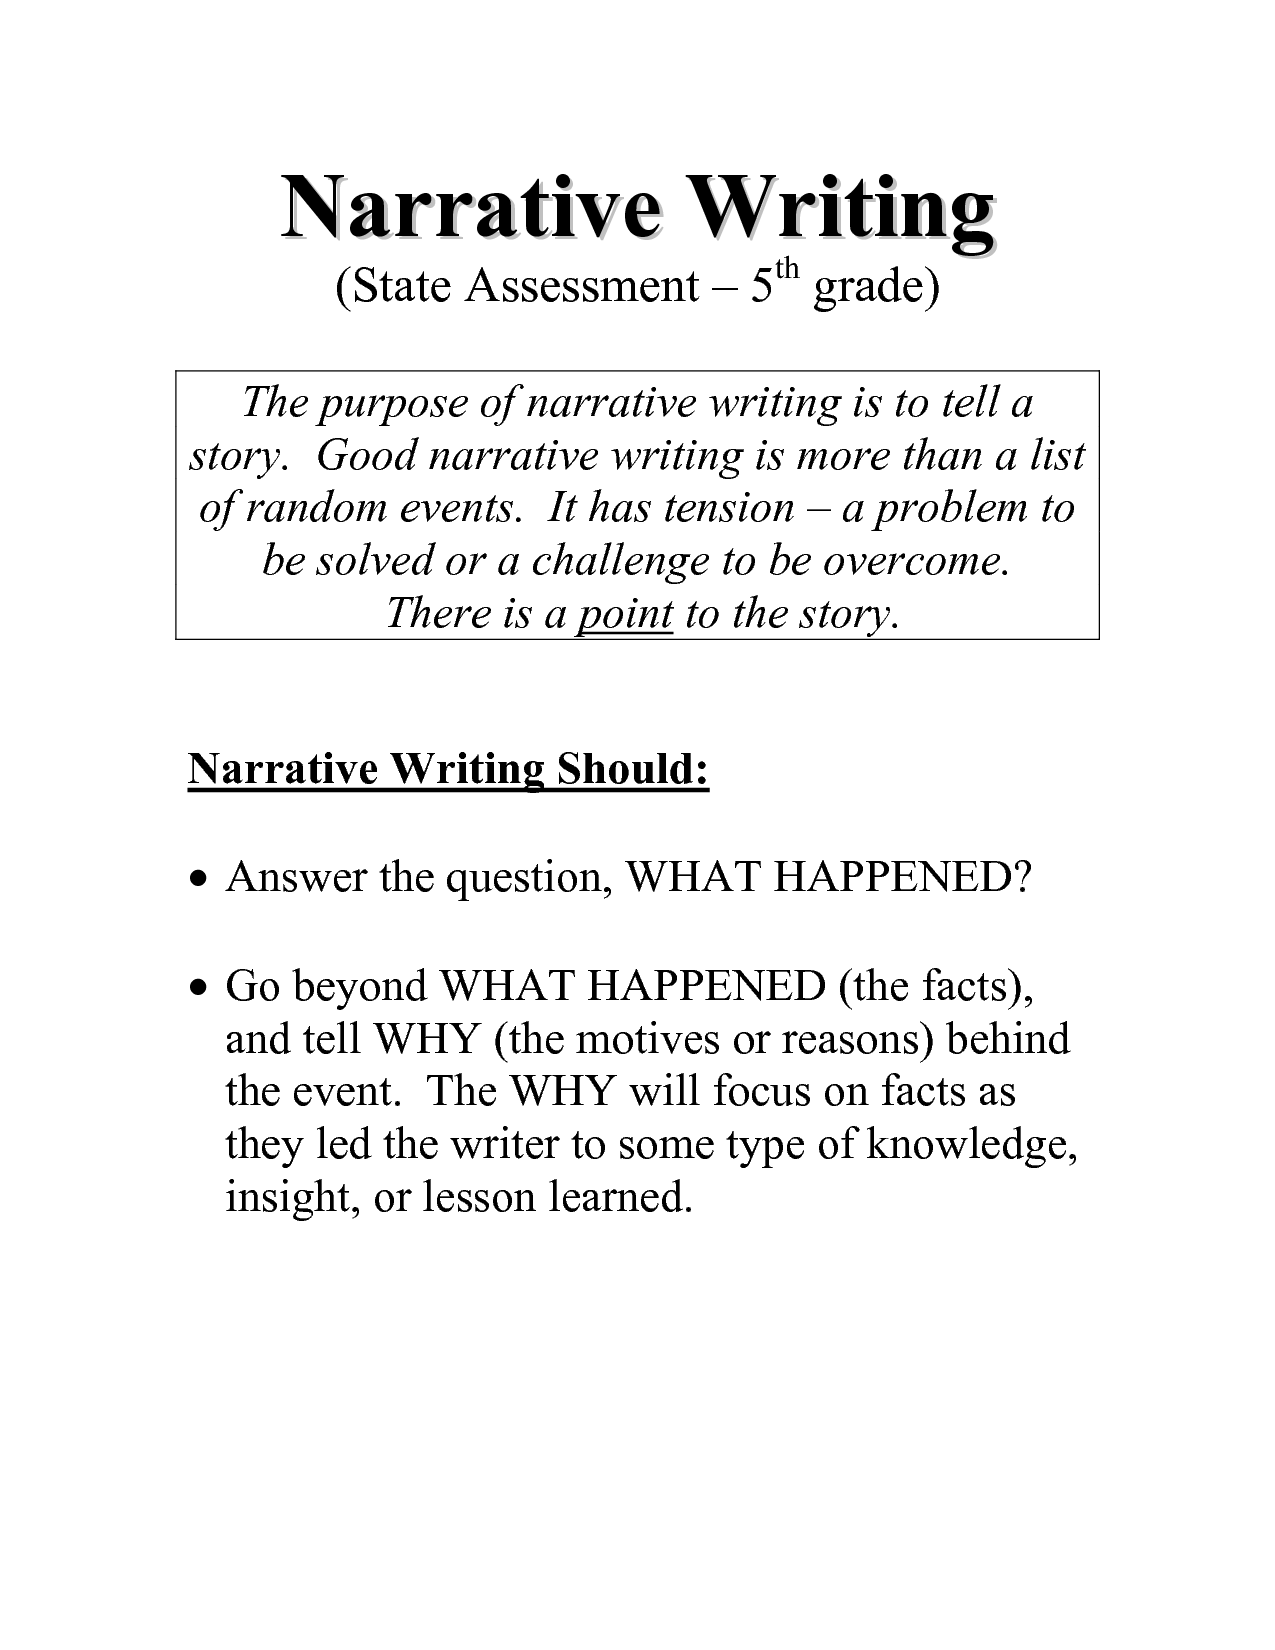 002 Writing Narrative Essay Outline Sample Actor Resume Beginner Prompts For Essays Best College Persuasive Opinion 4th Grade Full